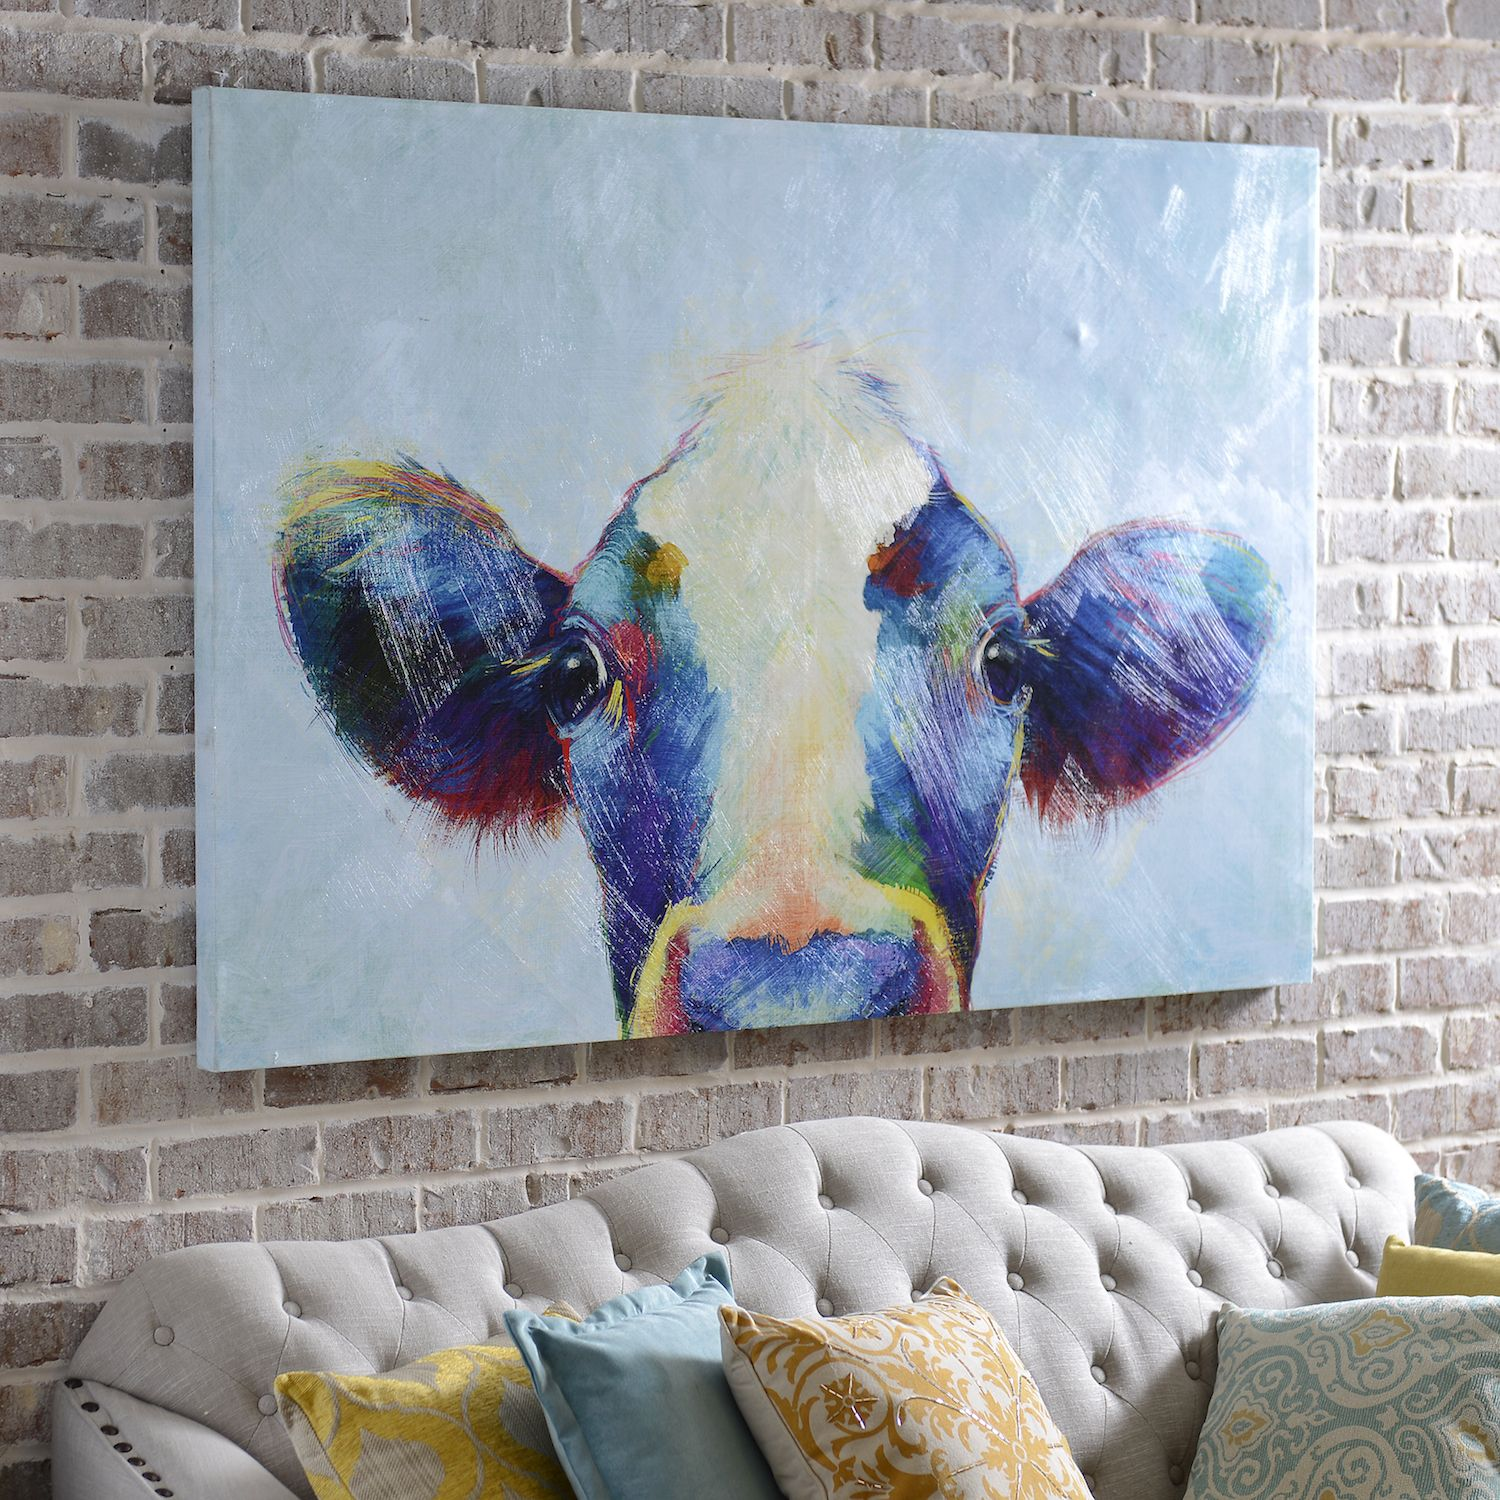 Be Bold With Your Wall Art Step Outside Your Comfort Zone And Add